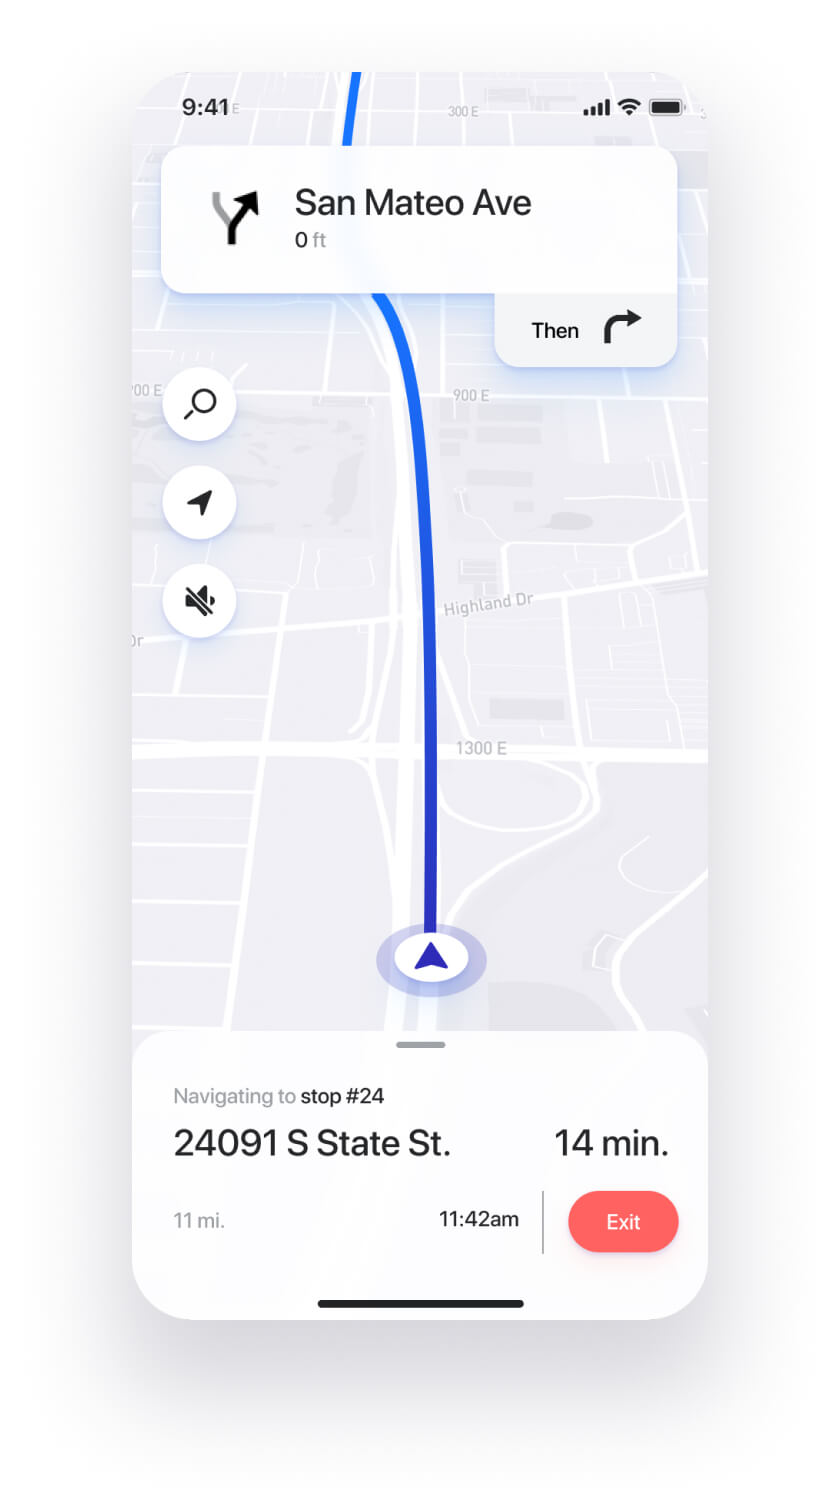 Straightaway route planner app built-in turn-by-turn navigation feature.